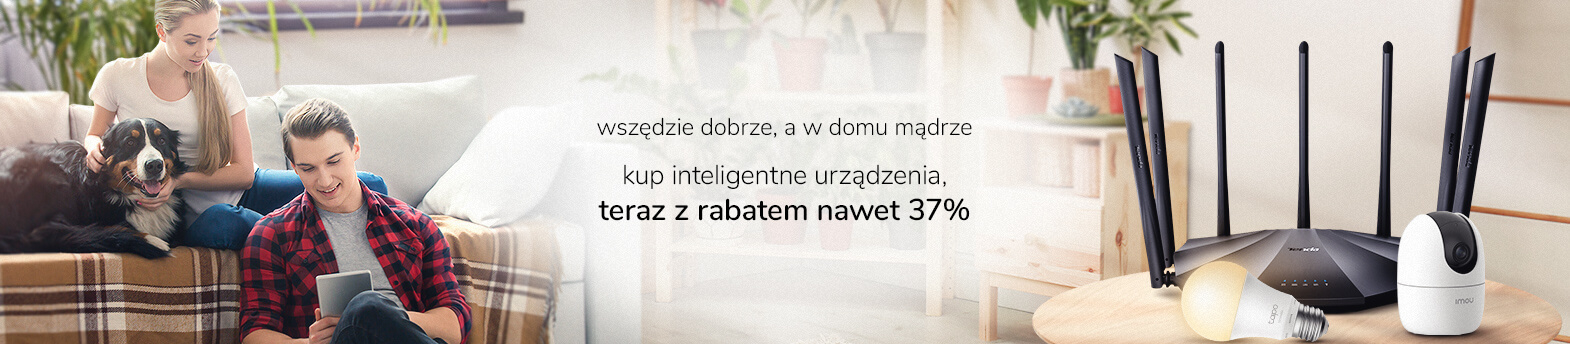 Smart Home z rabatem do 37%